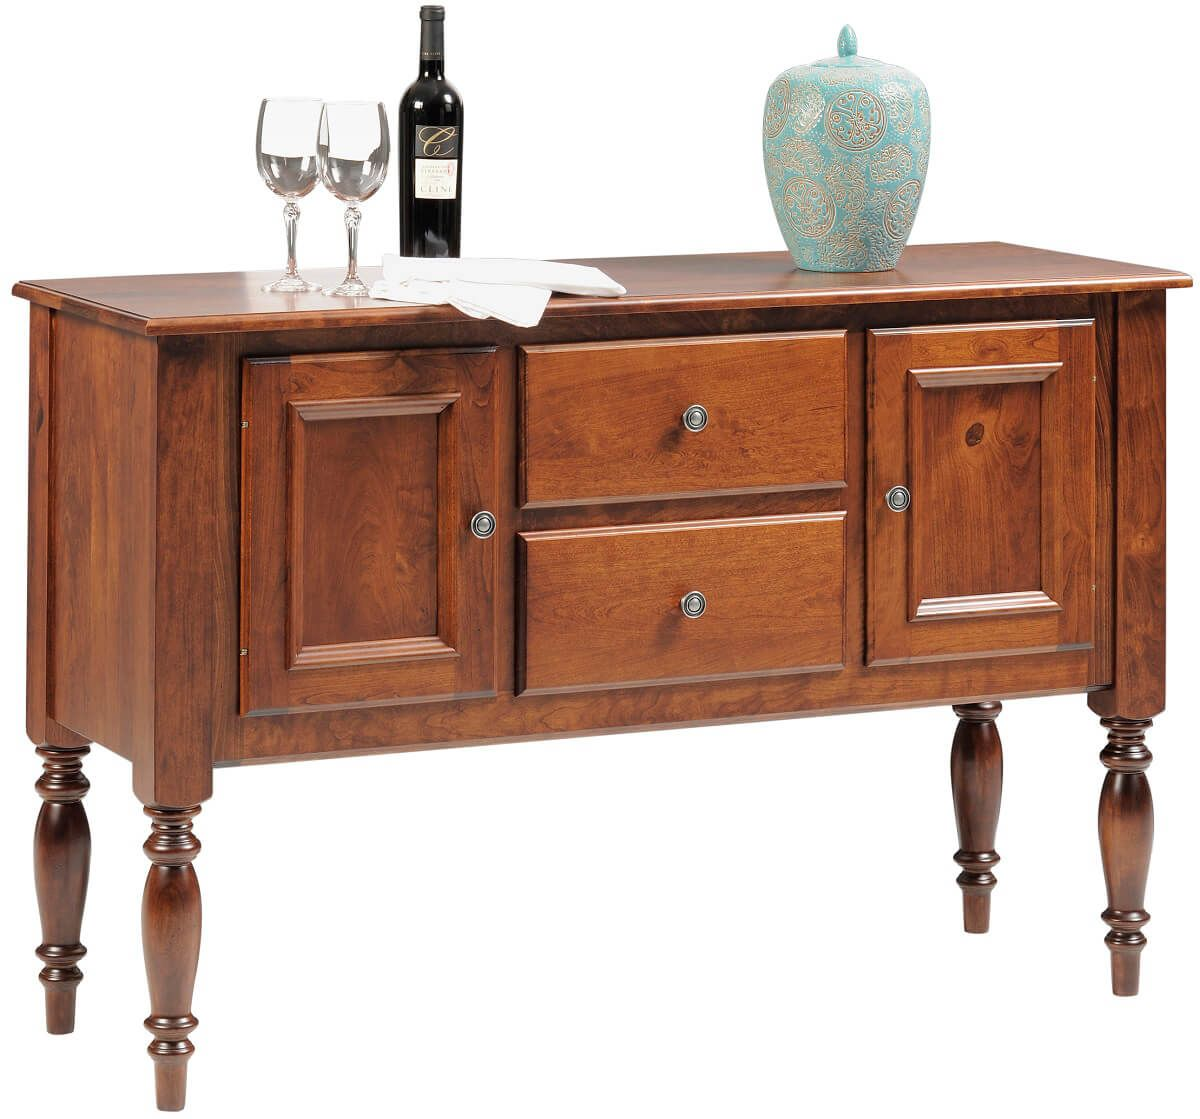 Liberty Park Sideboard in Cherry